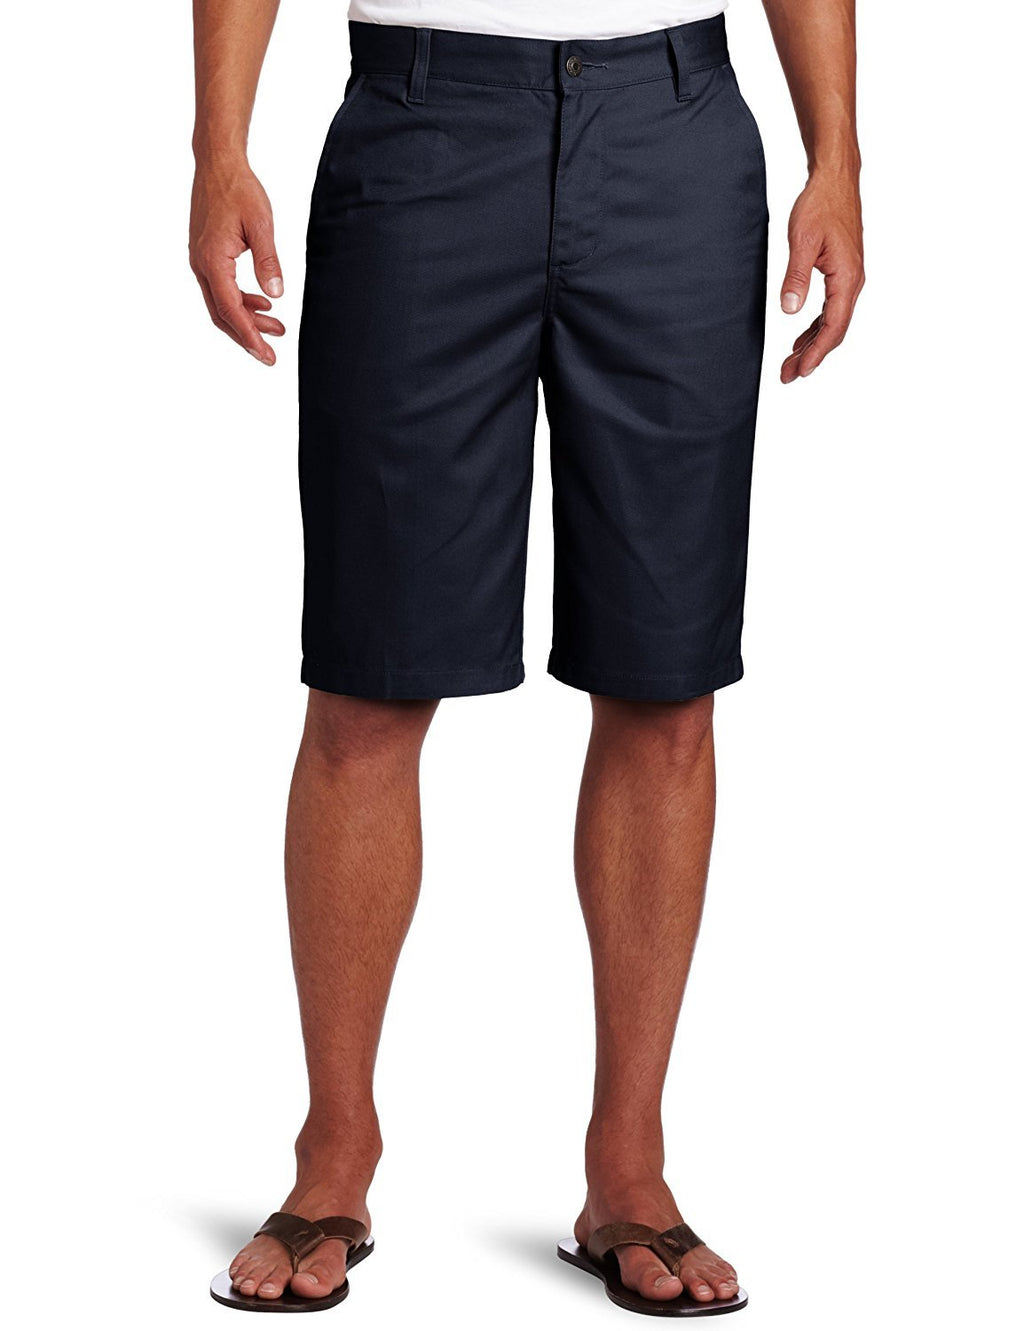 lee-uniforms-men's-flat-front-short